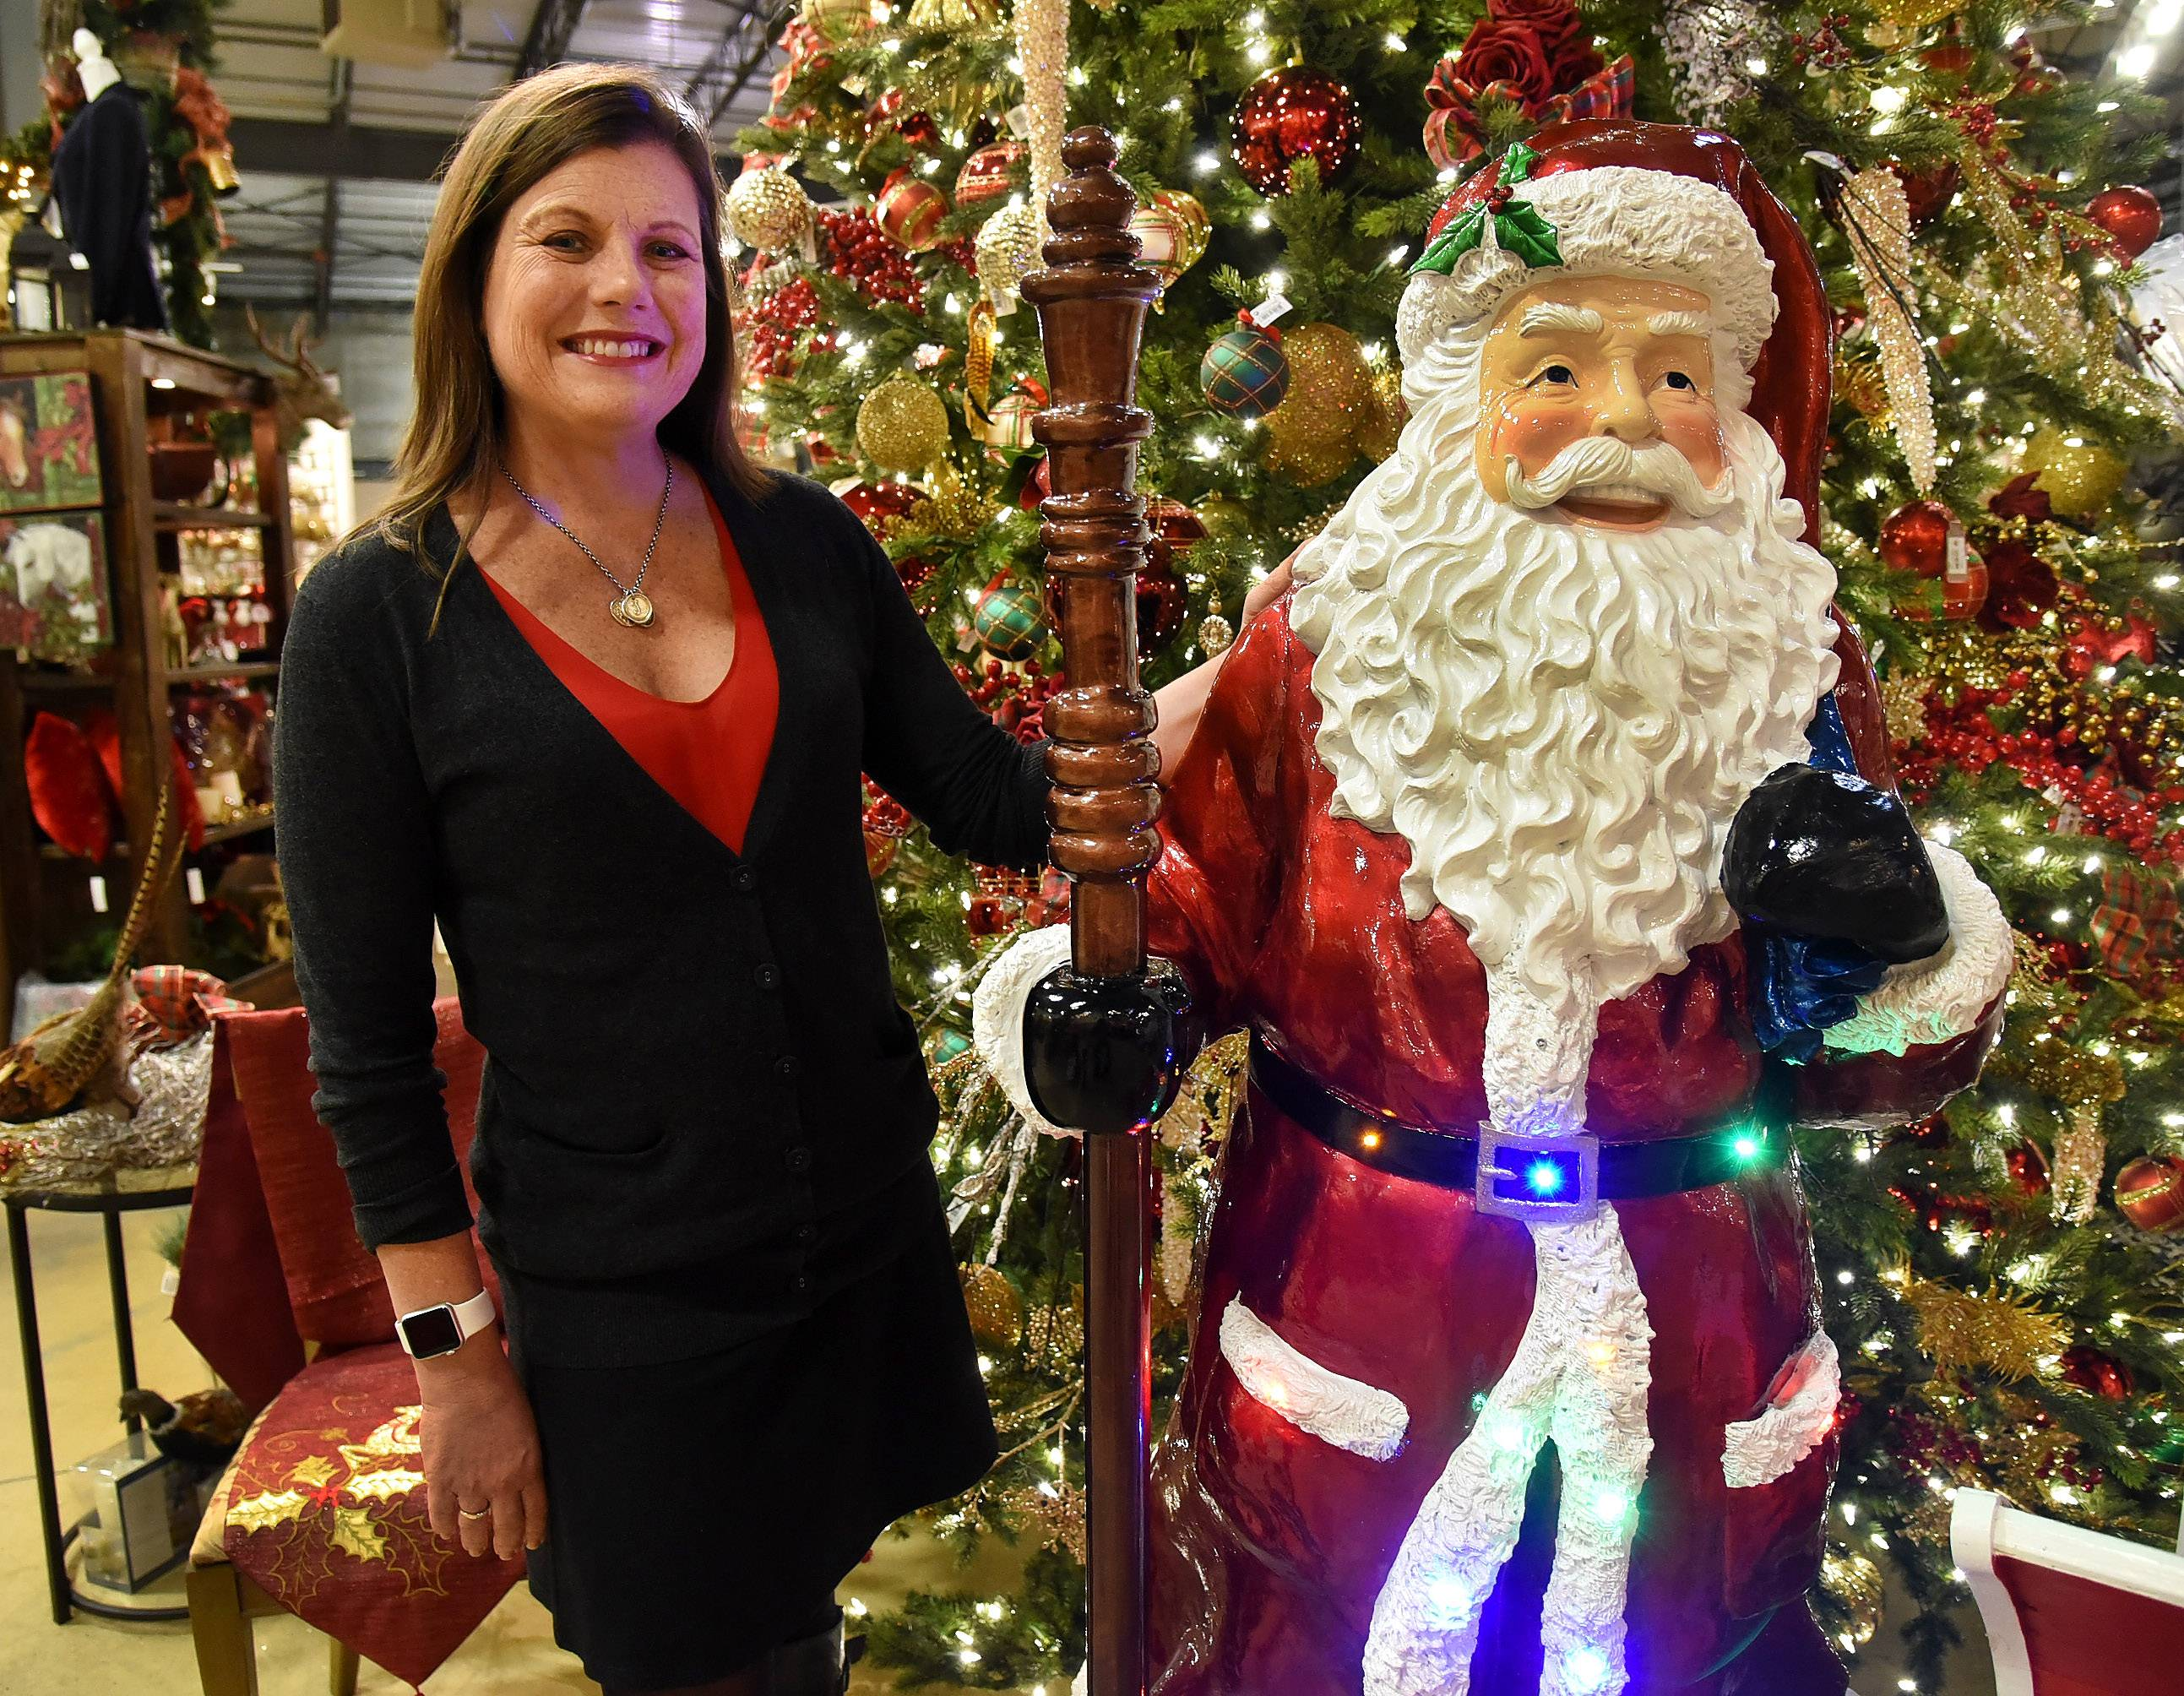 Treetime Christmas Creations owner Laurie Kane says decorations in local homes only get more and more elaborate.